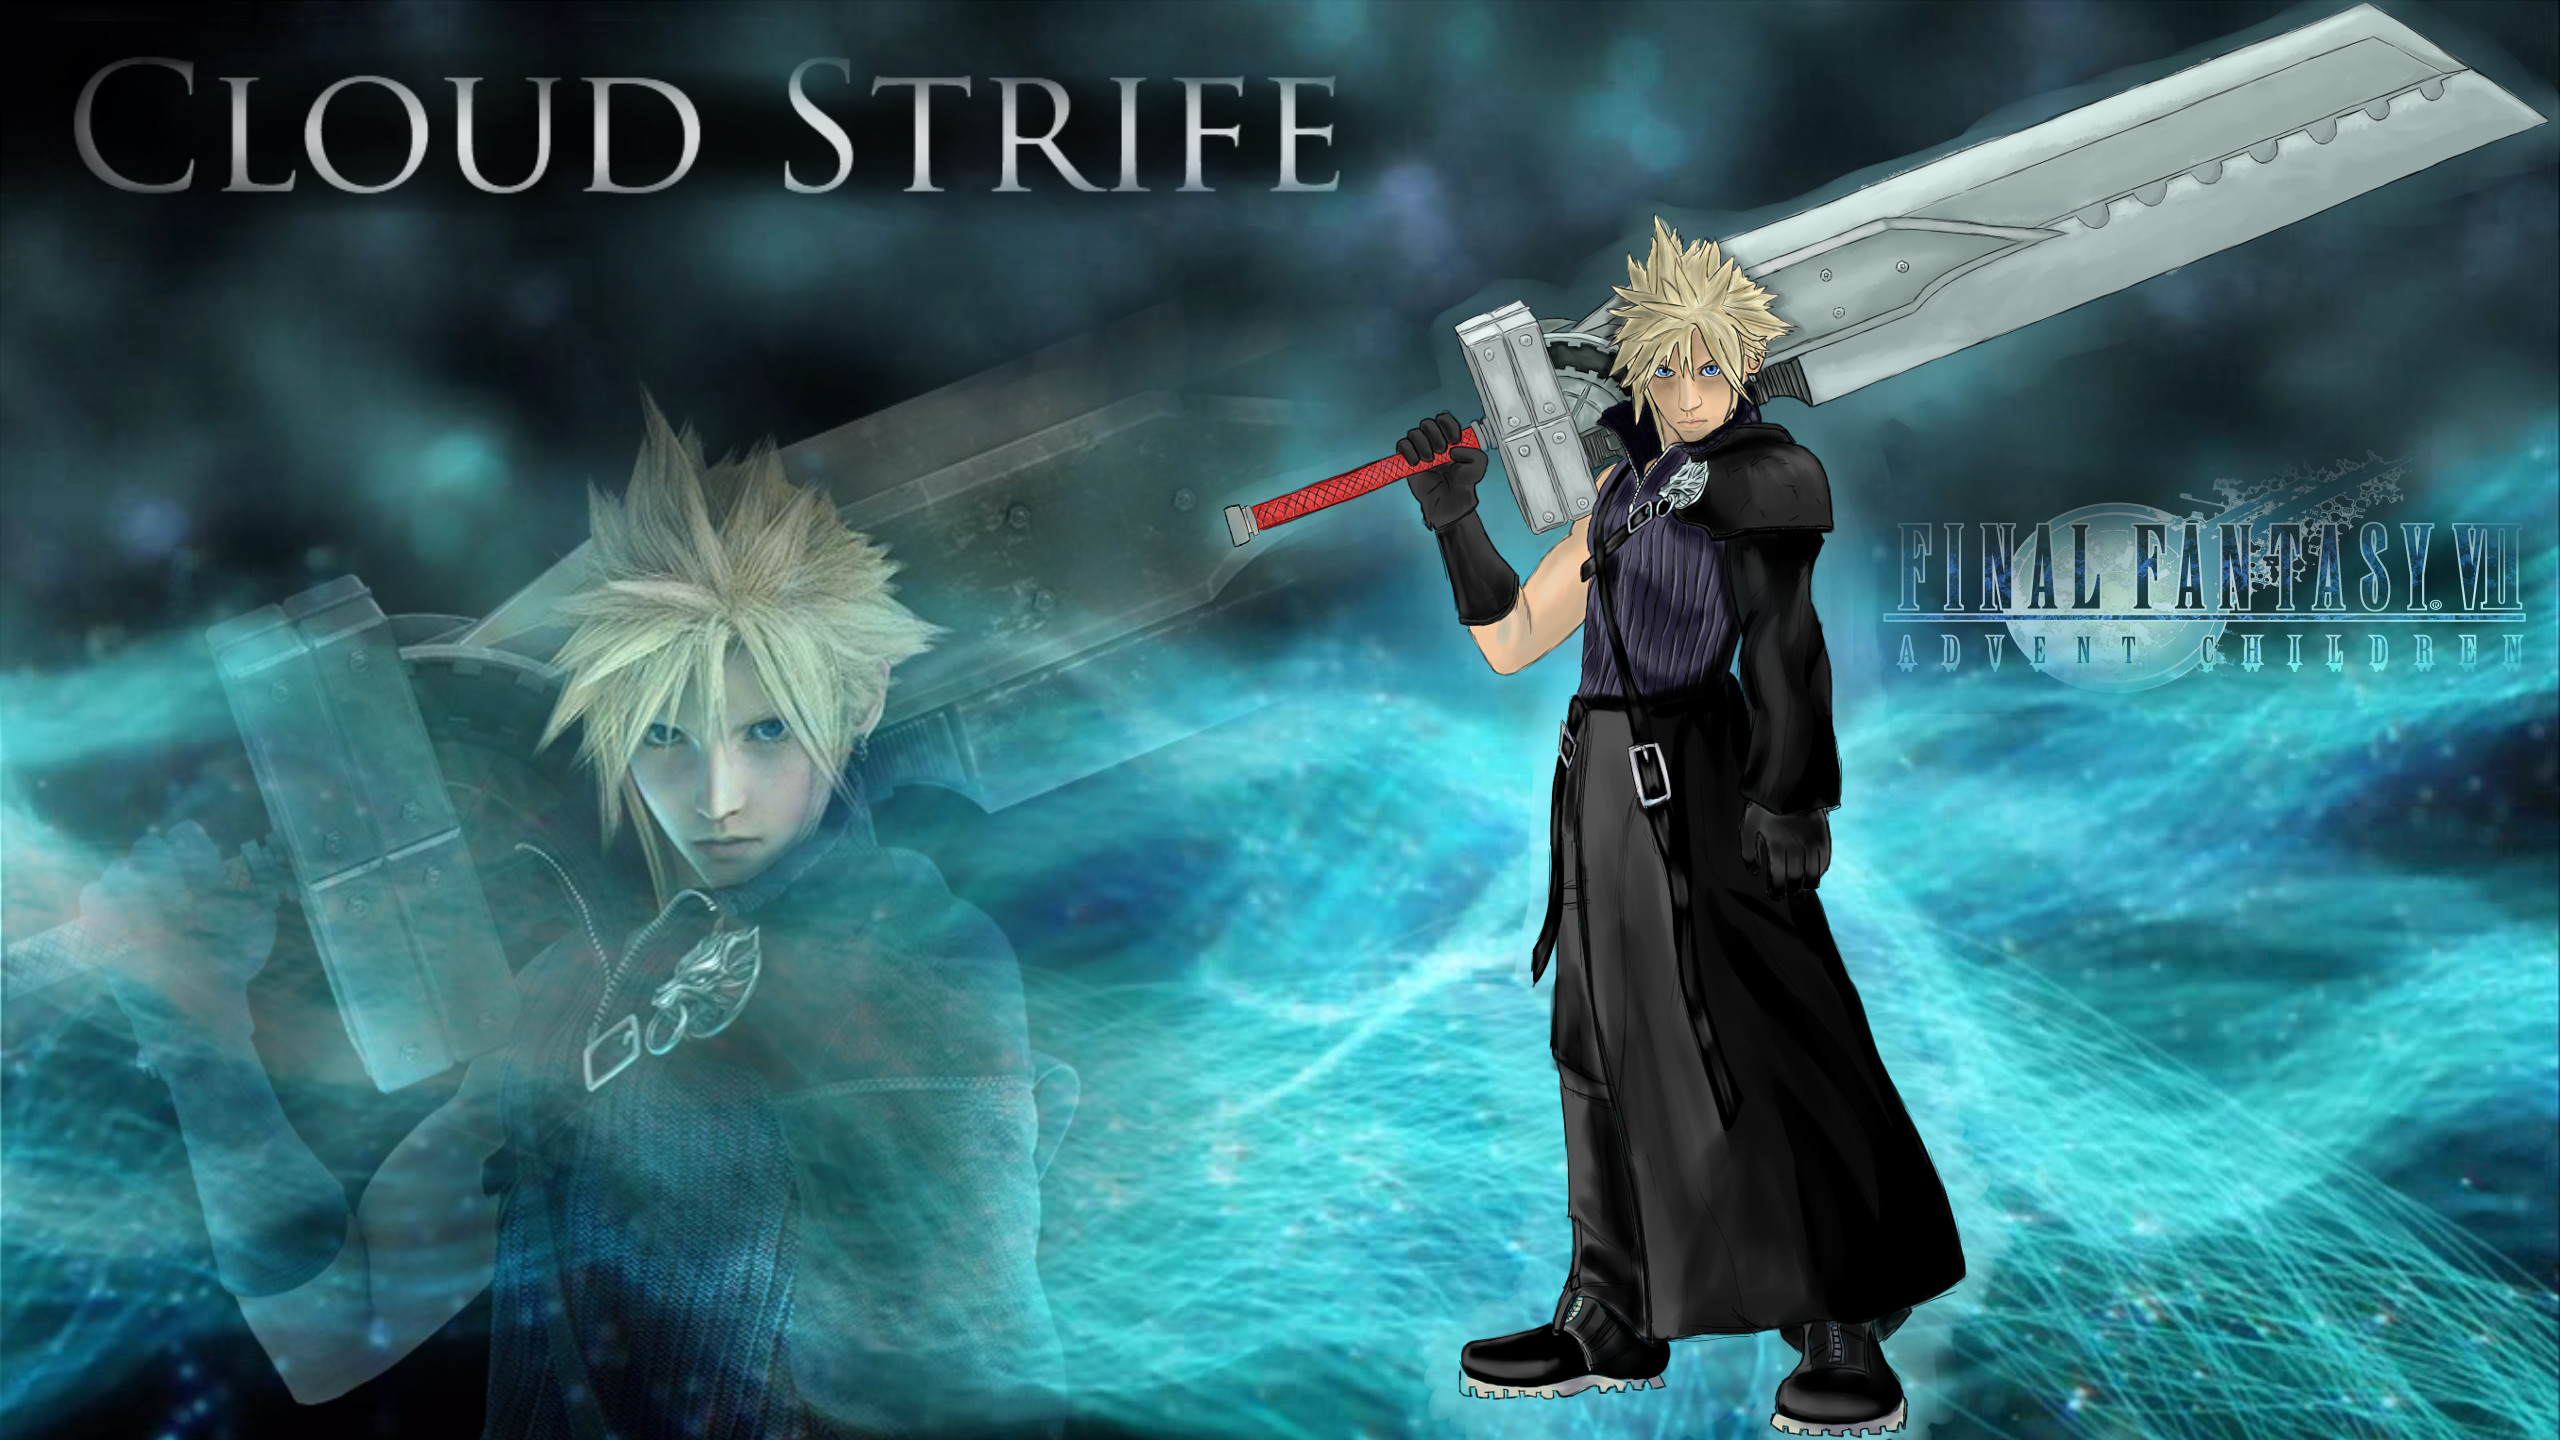 2560x1440 Cloud Strife Wallpaper 2 by Robsa990 Cloud Strife Wallpaper 2 by Robsa990